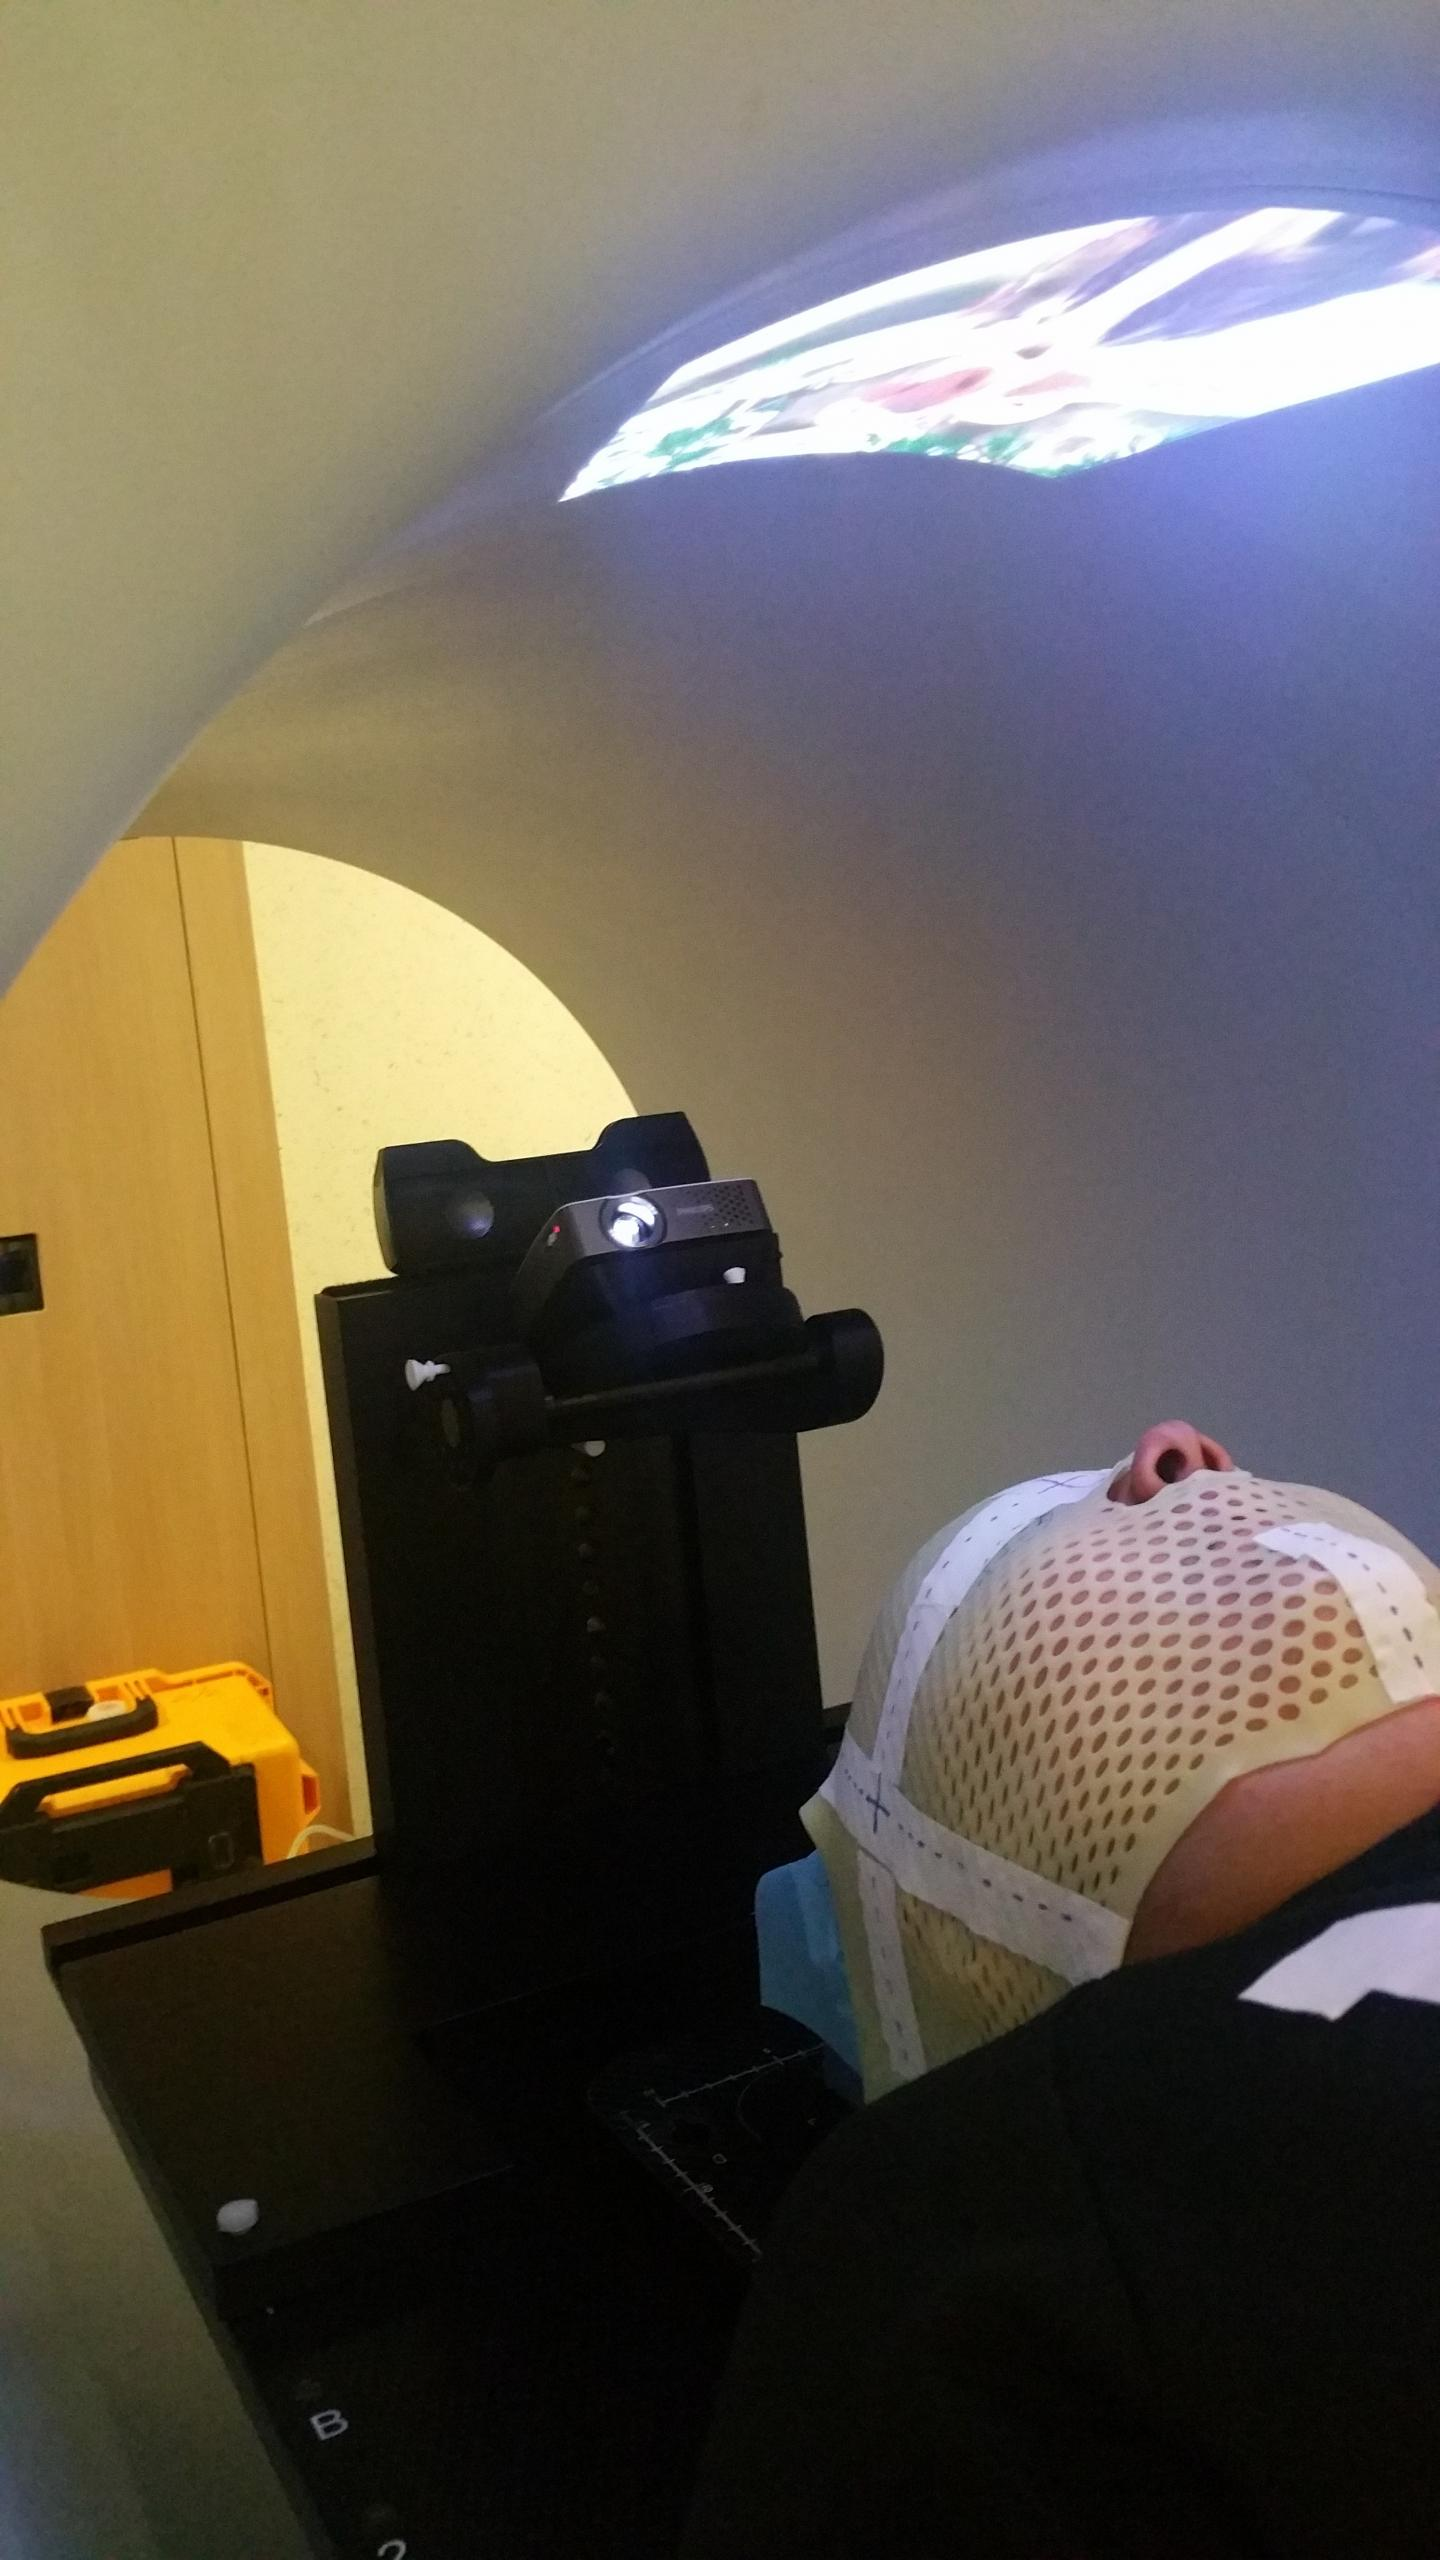 Child Watches a Movie While Undergoing Radiotherapy Treatment (1 of 3)